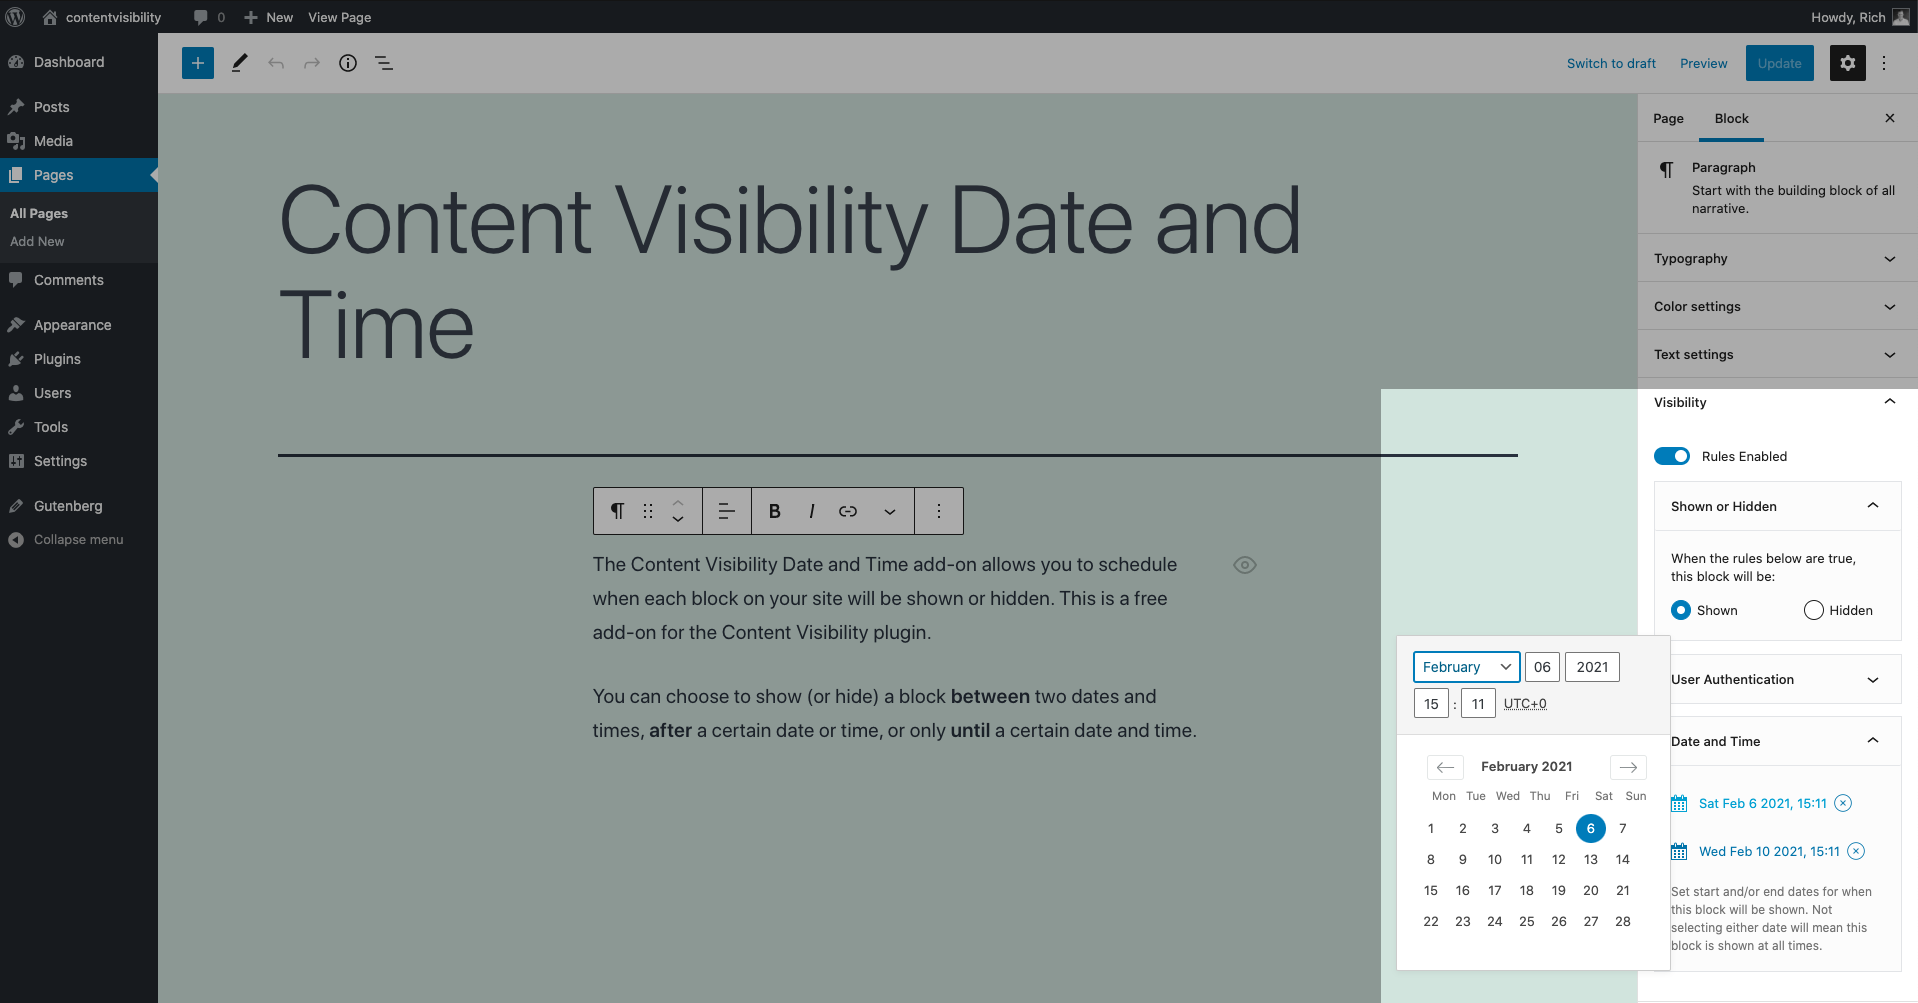 Showing the content visibility date and time controls in the content editor sidebar